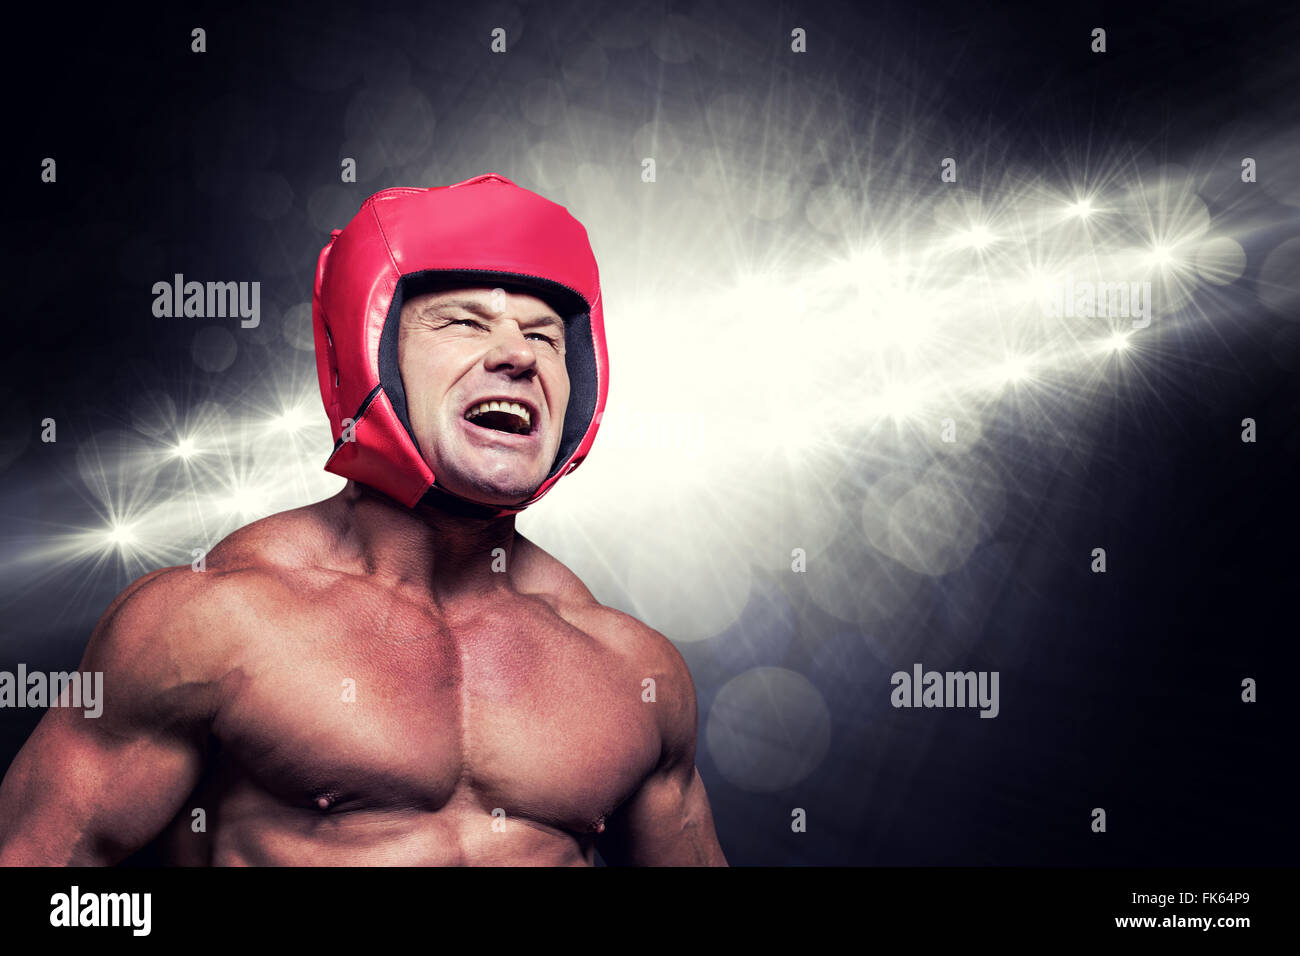 Composite image of angry boxer with headgear - Stock Image